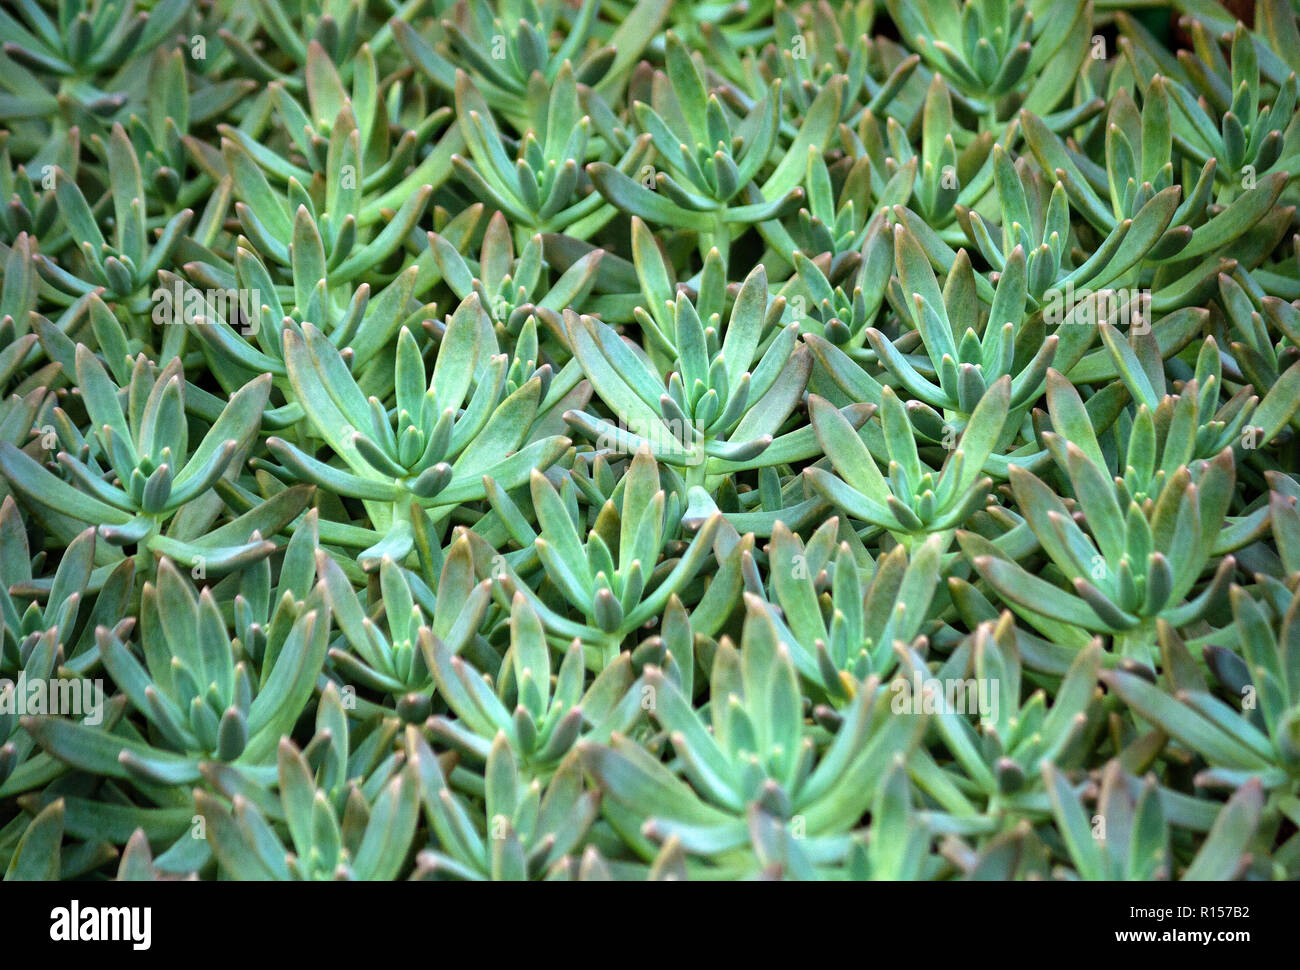 sedum succulent plant with pale blue green, thick and fleshy leaves, many plants growing in the garden, leaves occupy the whole picture, oblong plump Stock Photo